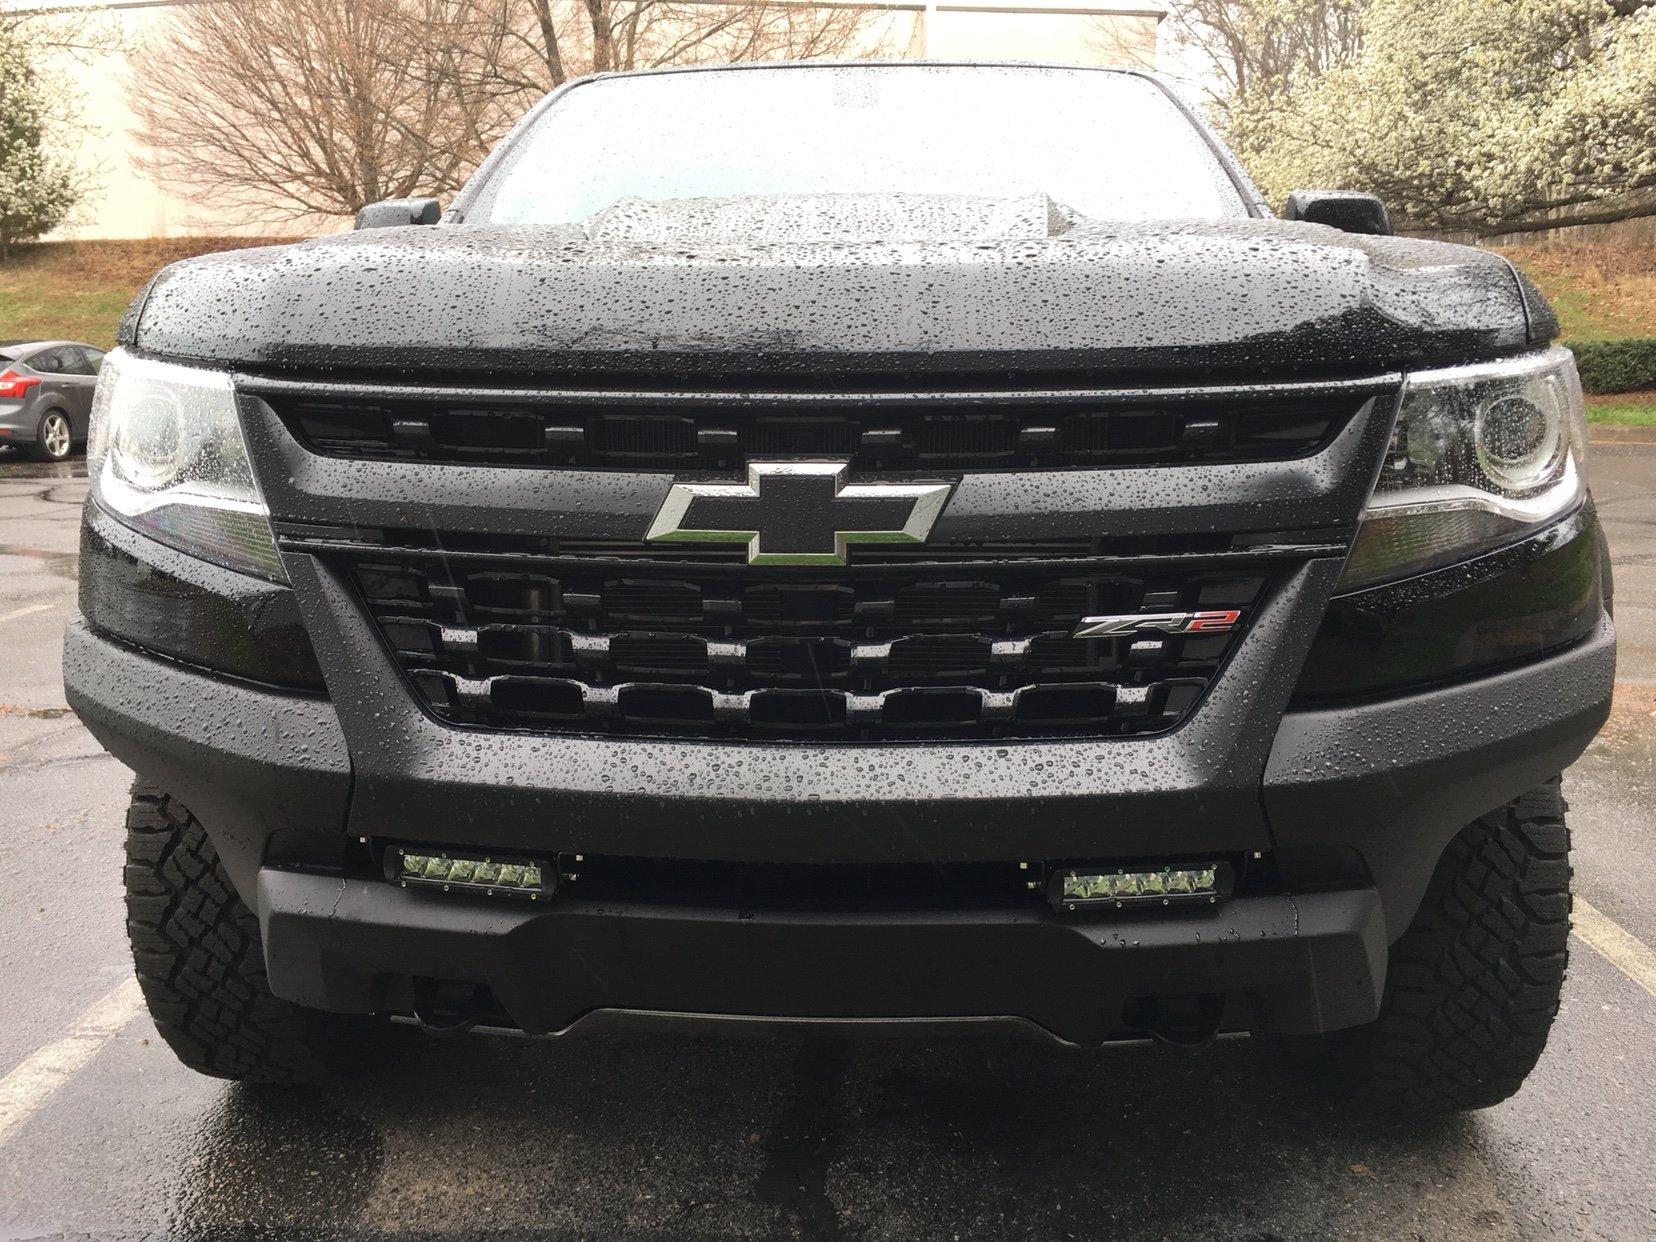 DIY ZR2 LED Fog Lights using OEM Fog light switch, fuse, and relay -  ZR2zone.com